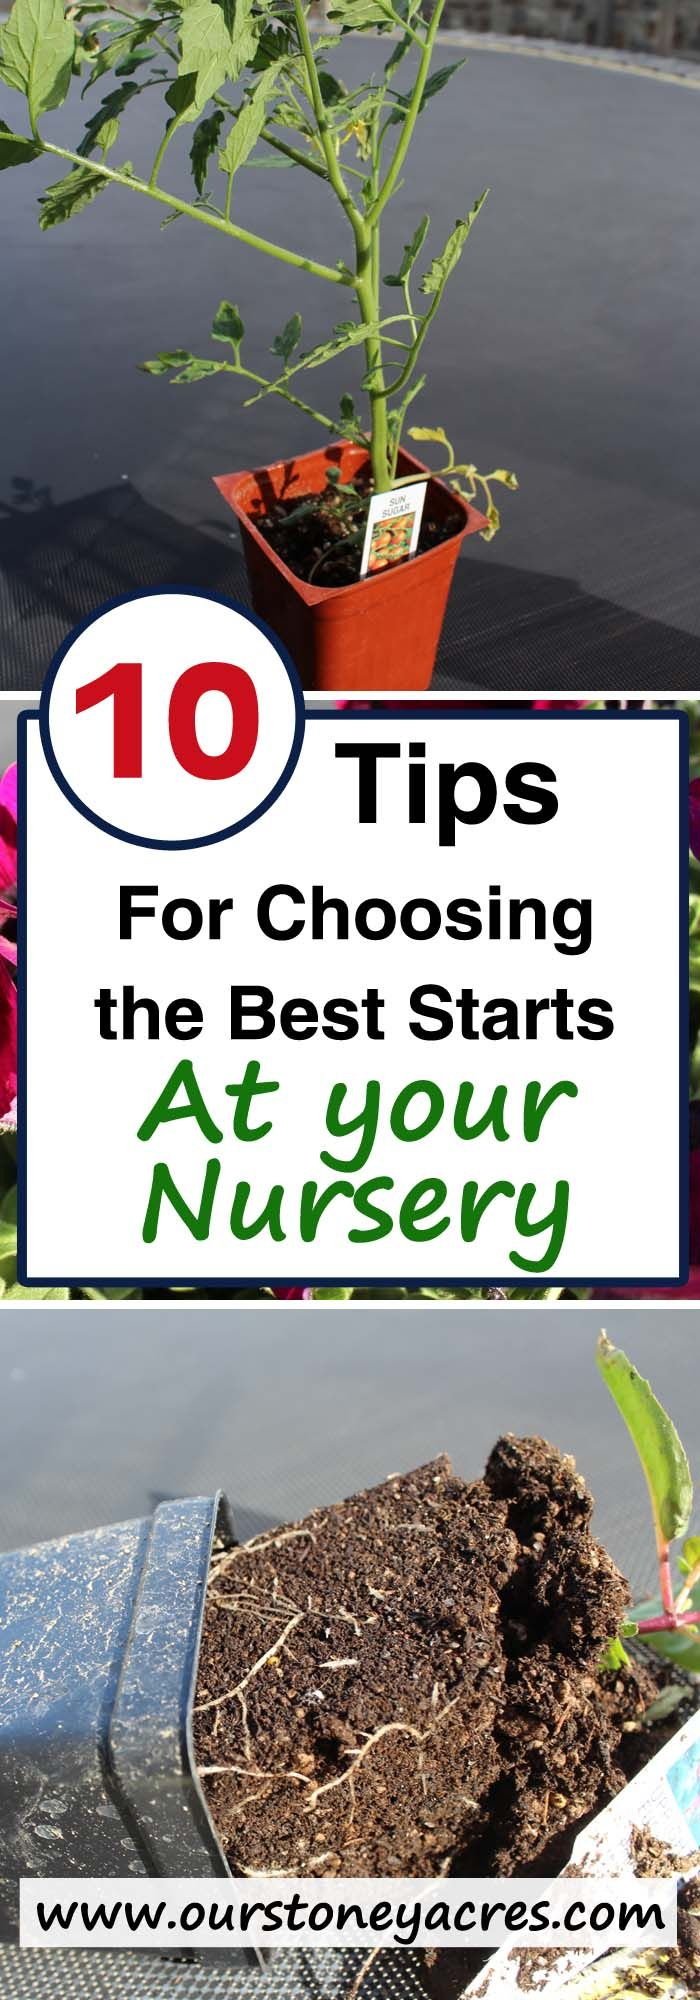 Choosing the best plant starts at your local nursery is important to get your garden off to it's best start this year!